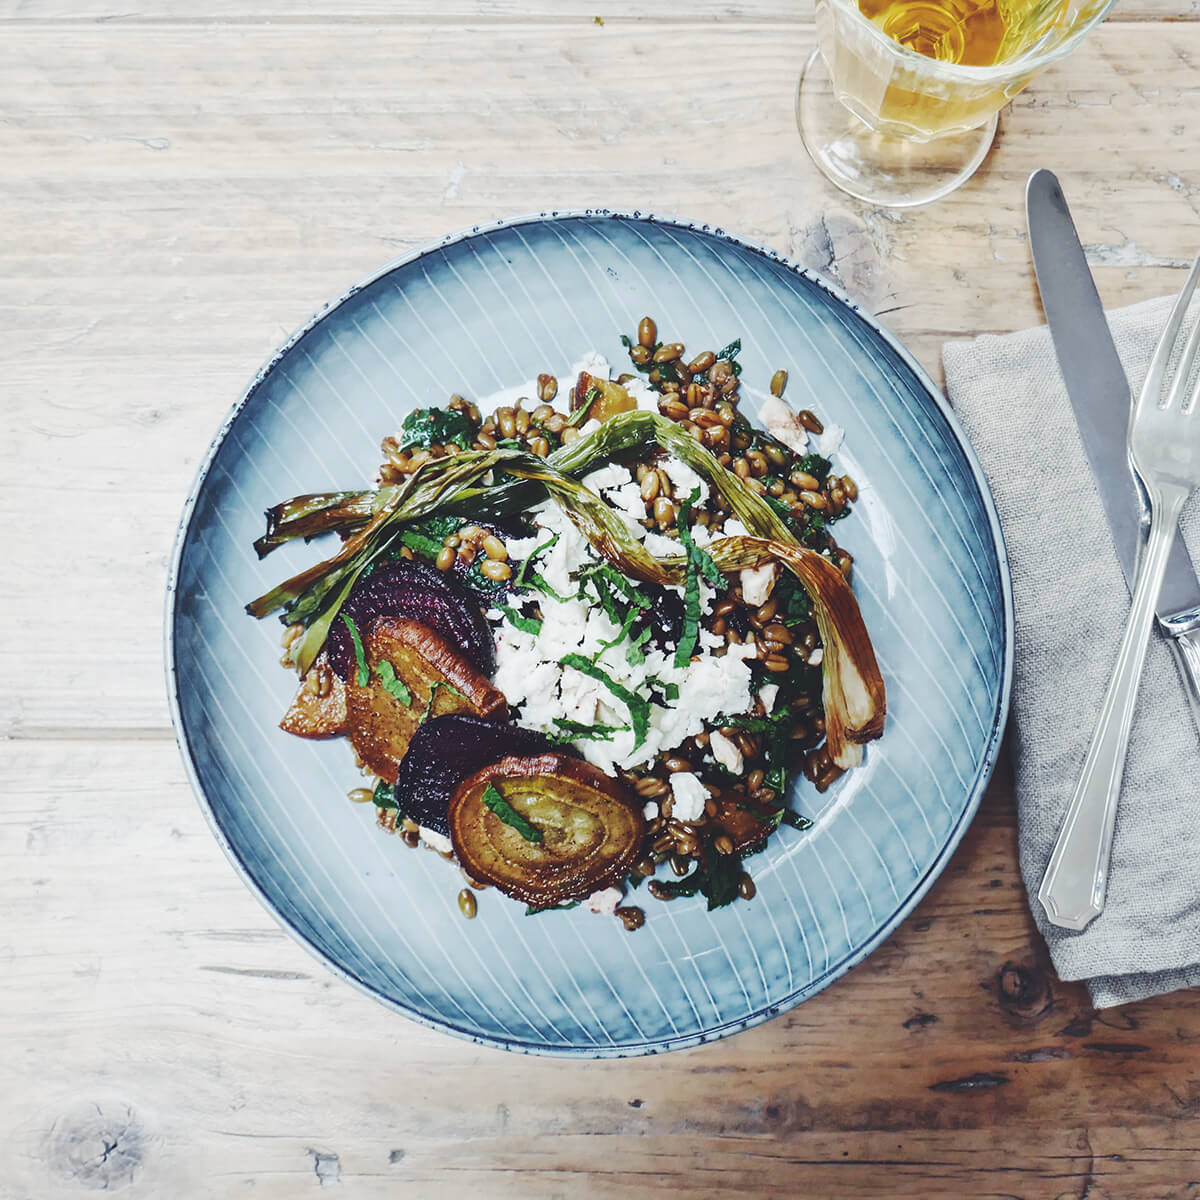 Broth Braised Freekeh Salad with Roasted Beets, Charred Spring Onion, Feta & Mint